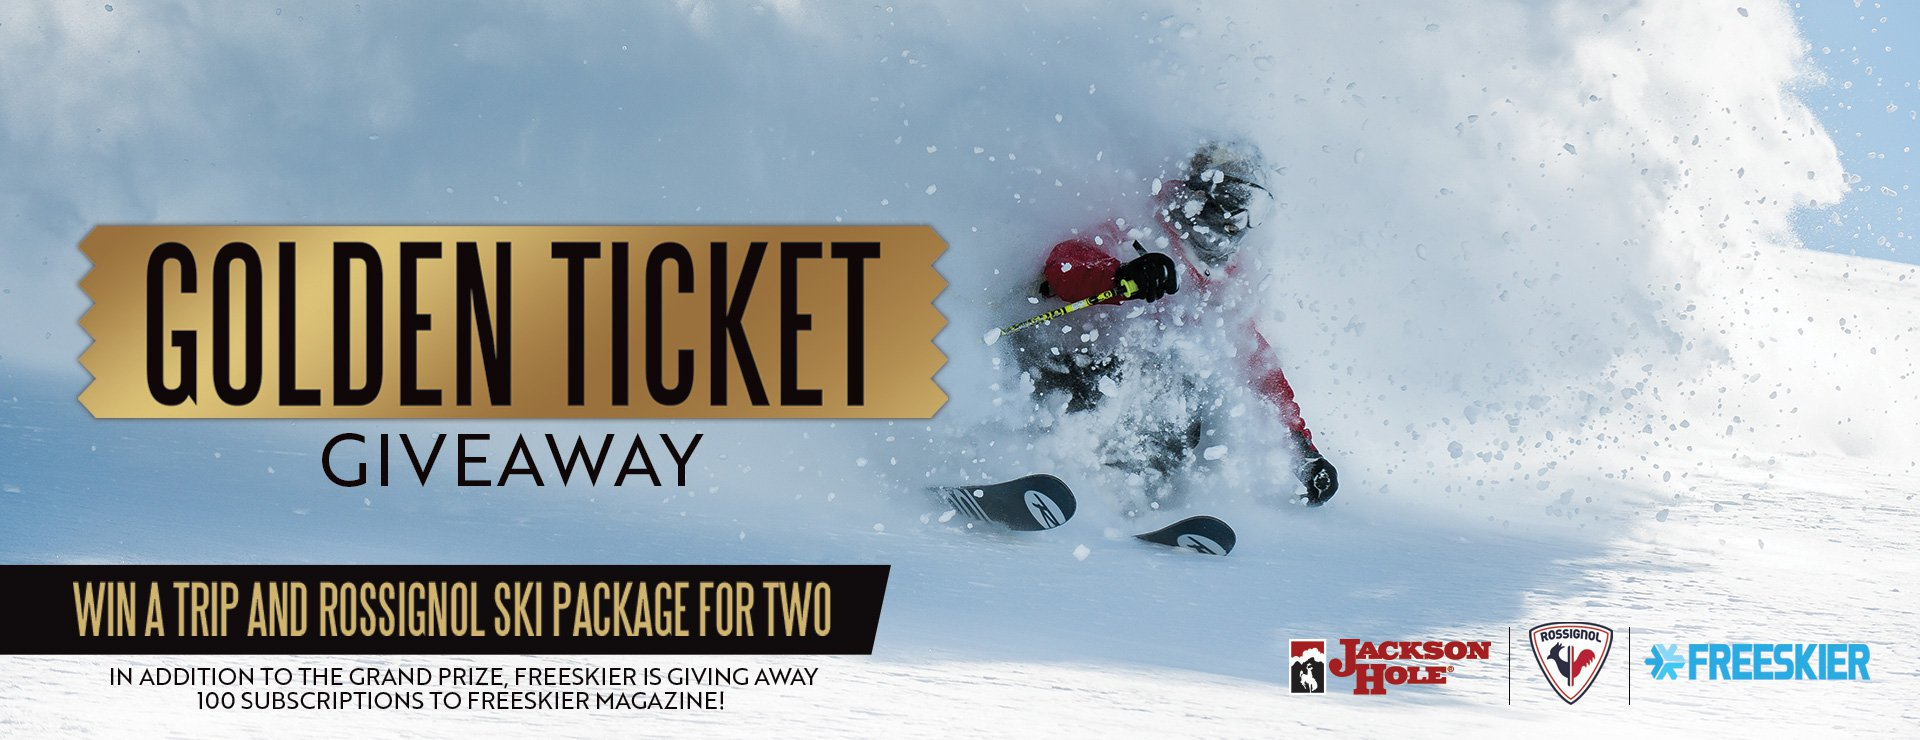 Golden Ticket Giveway